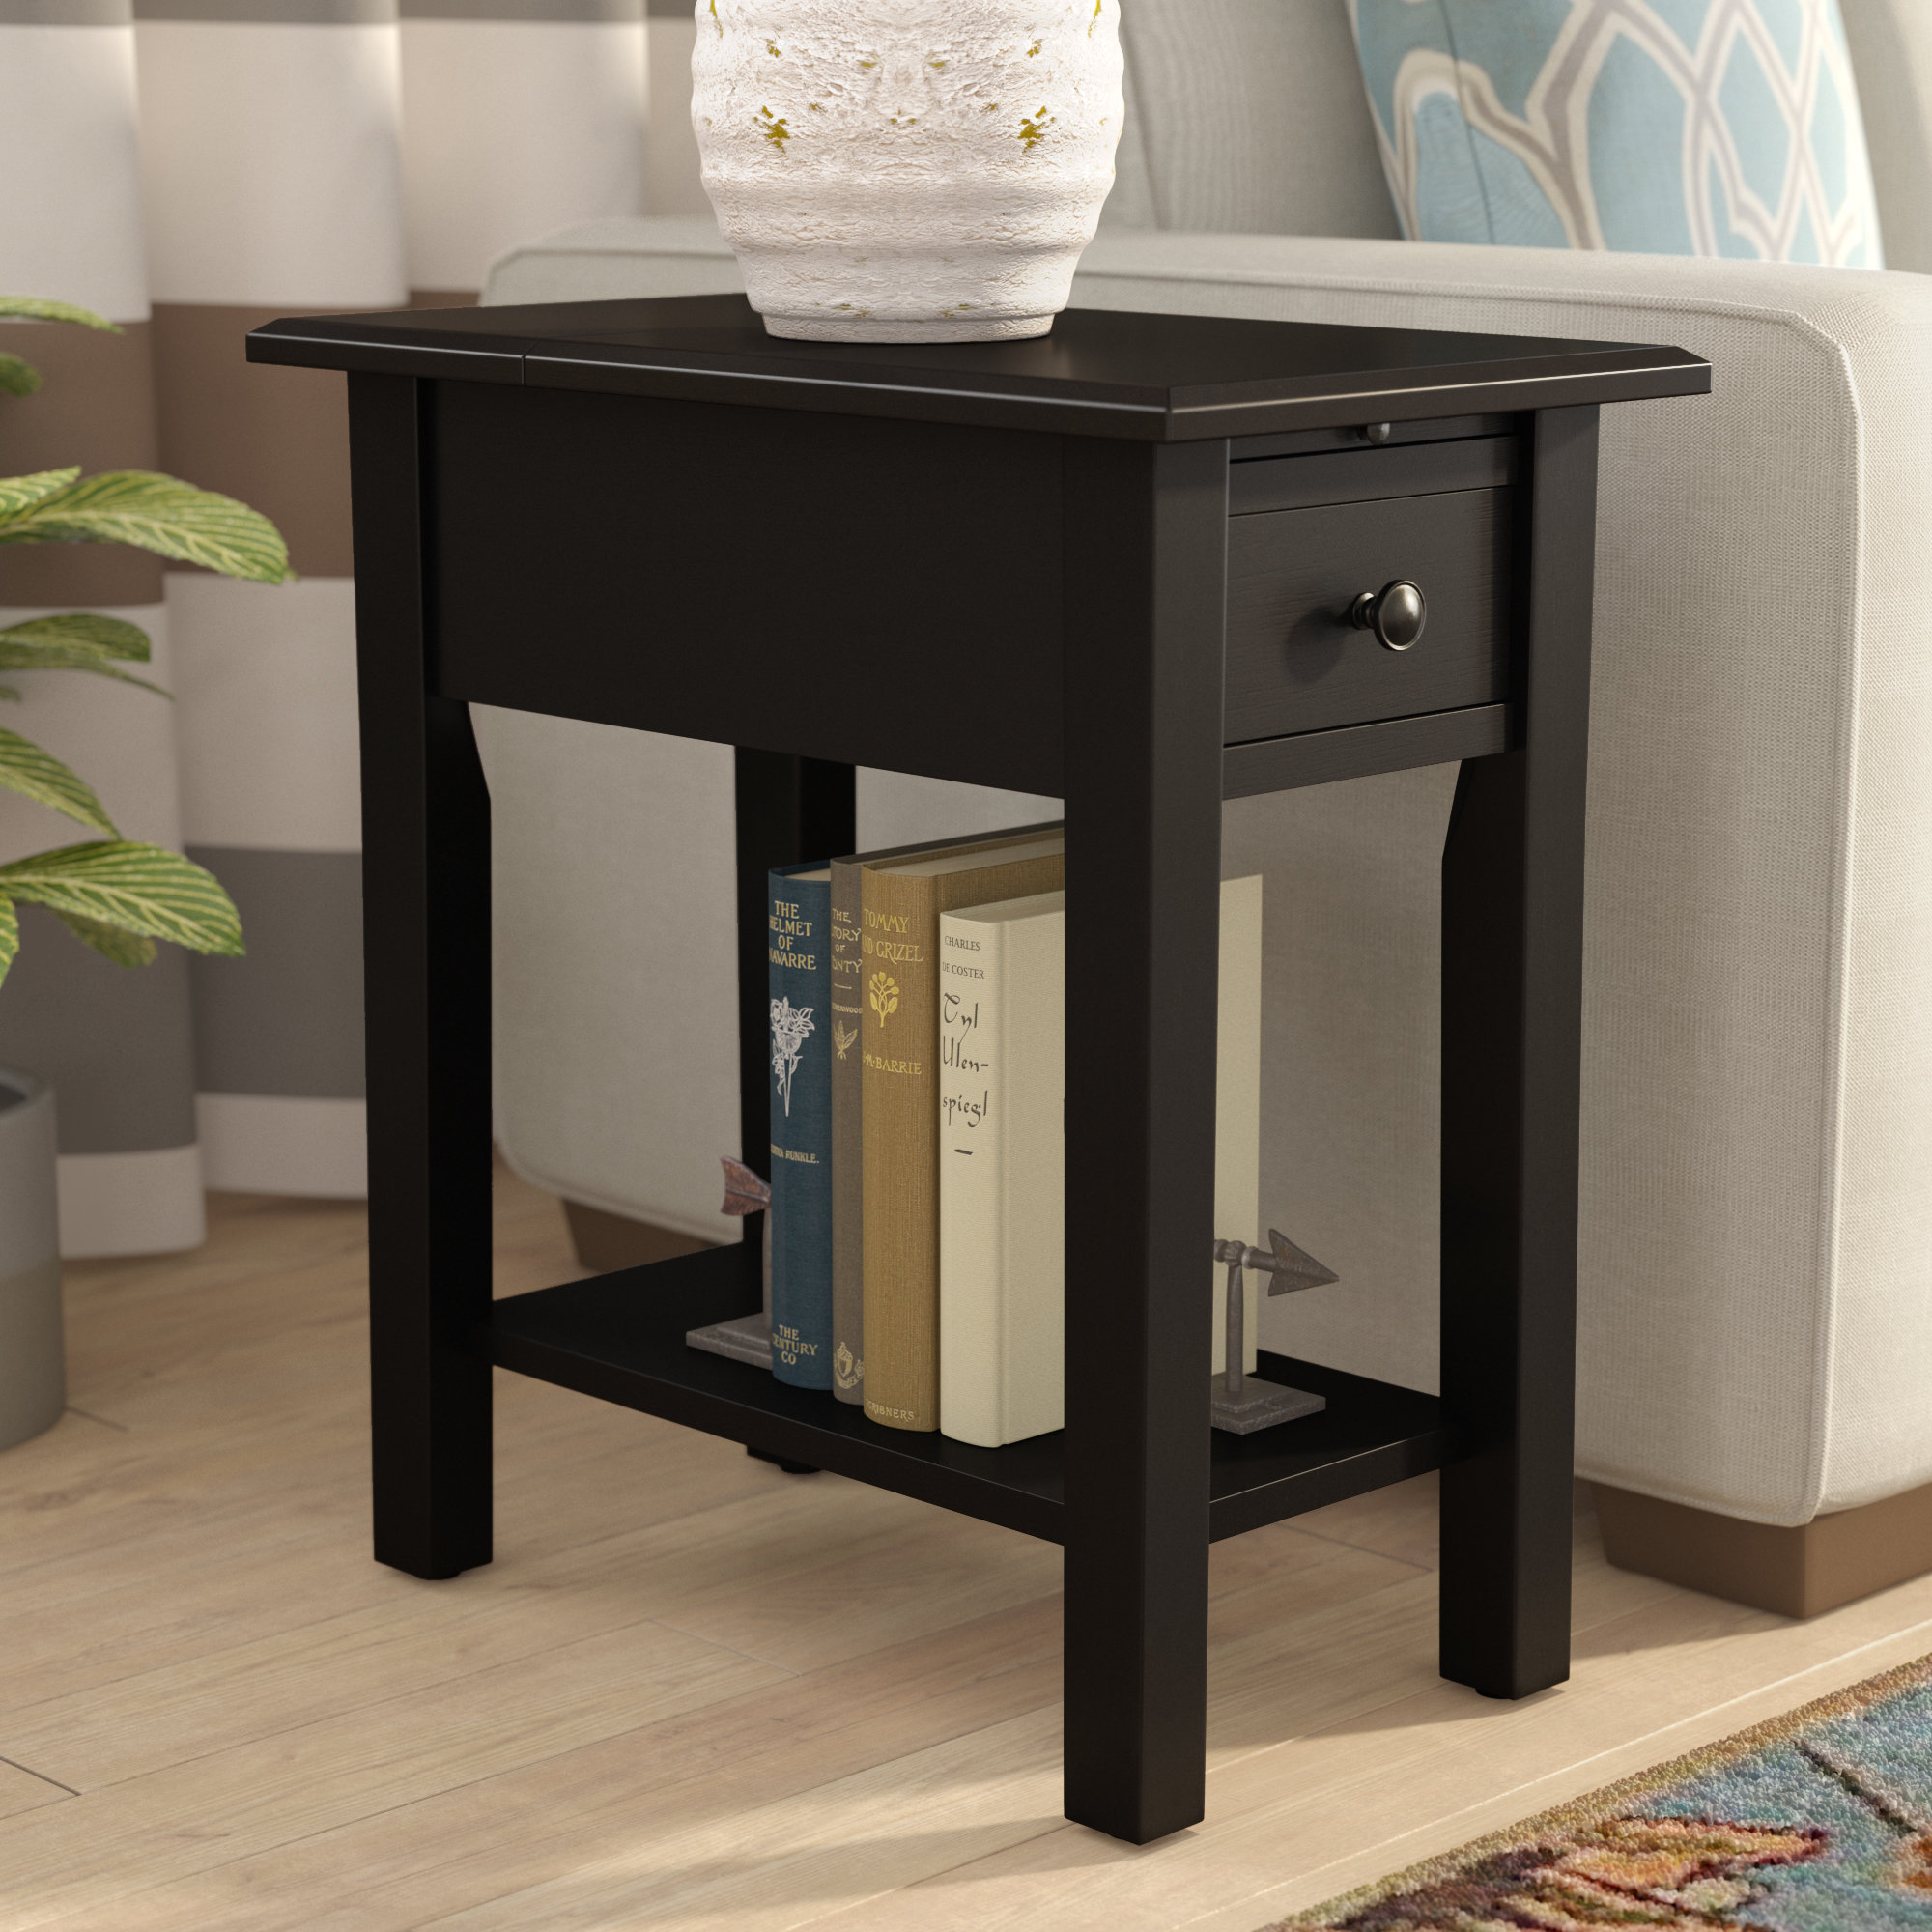 andover mills lundgren end table with storage reviews hadley accent drawer small round metal patio chrome glass tables outdoor side beverage cooler garden console cupboard drawers